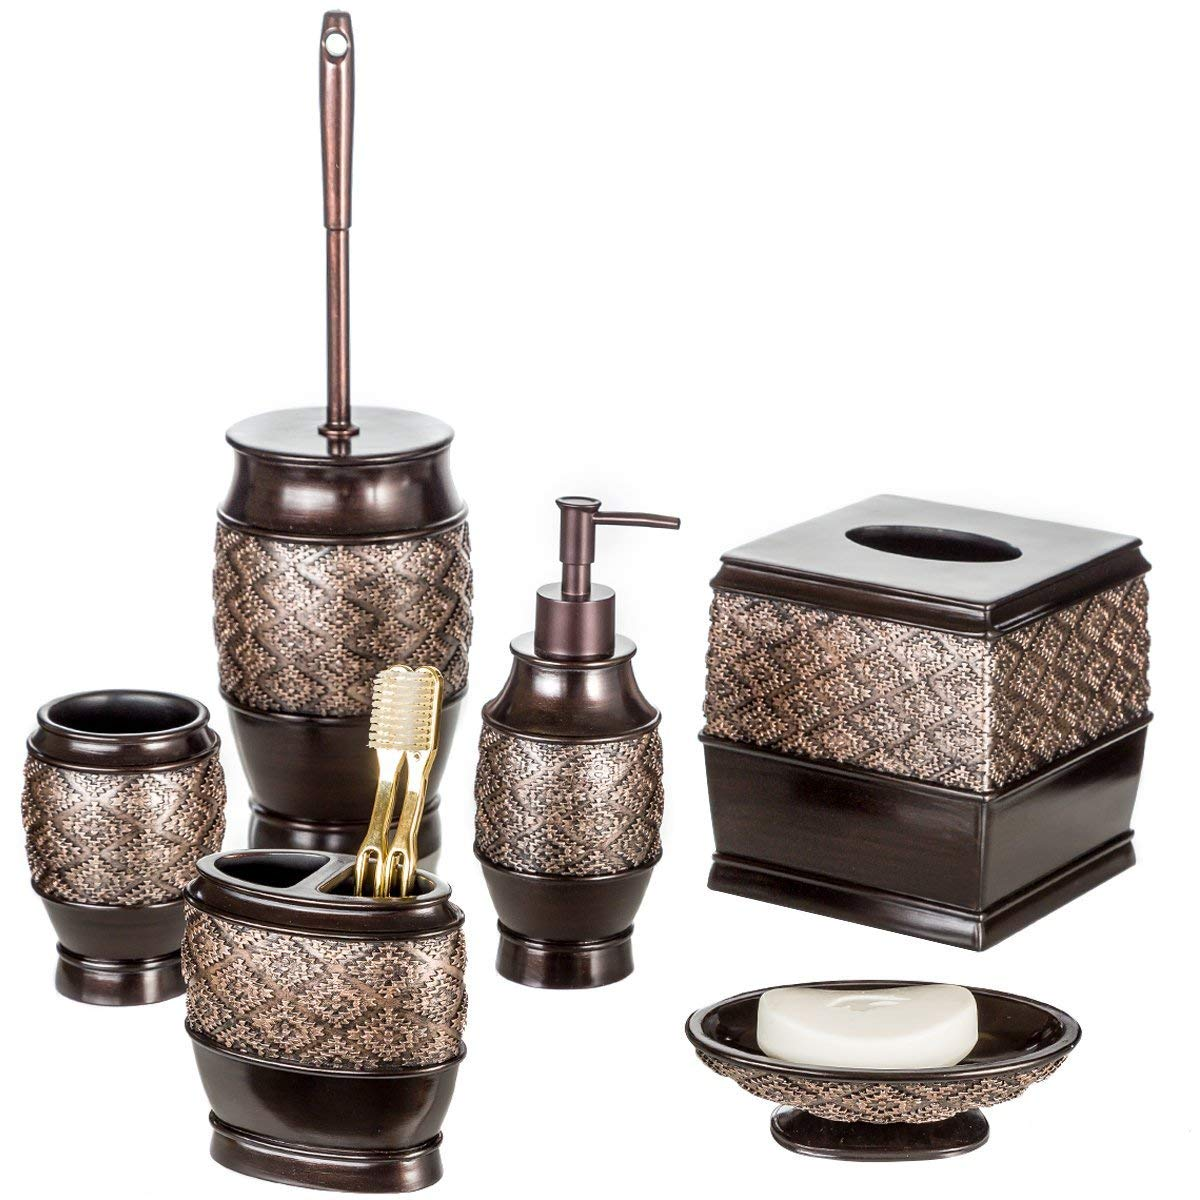 Dublin 6-Piece Bathroom Accessories Set, Includes Decorative Countertop Soap Dispenser, Soap Dish, Tumbler, Toothbrush Holder, Tissue Box Cover and Toilet Bowl Brush (Brown) by Creative Scents (Image #1)